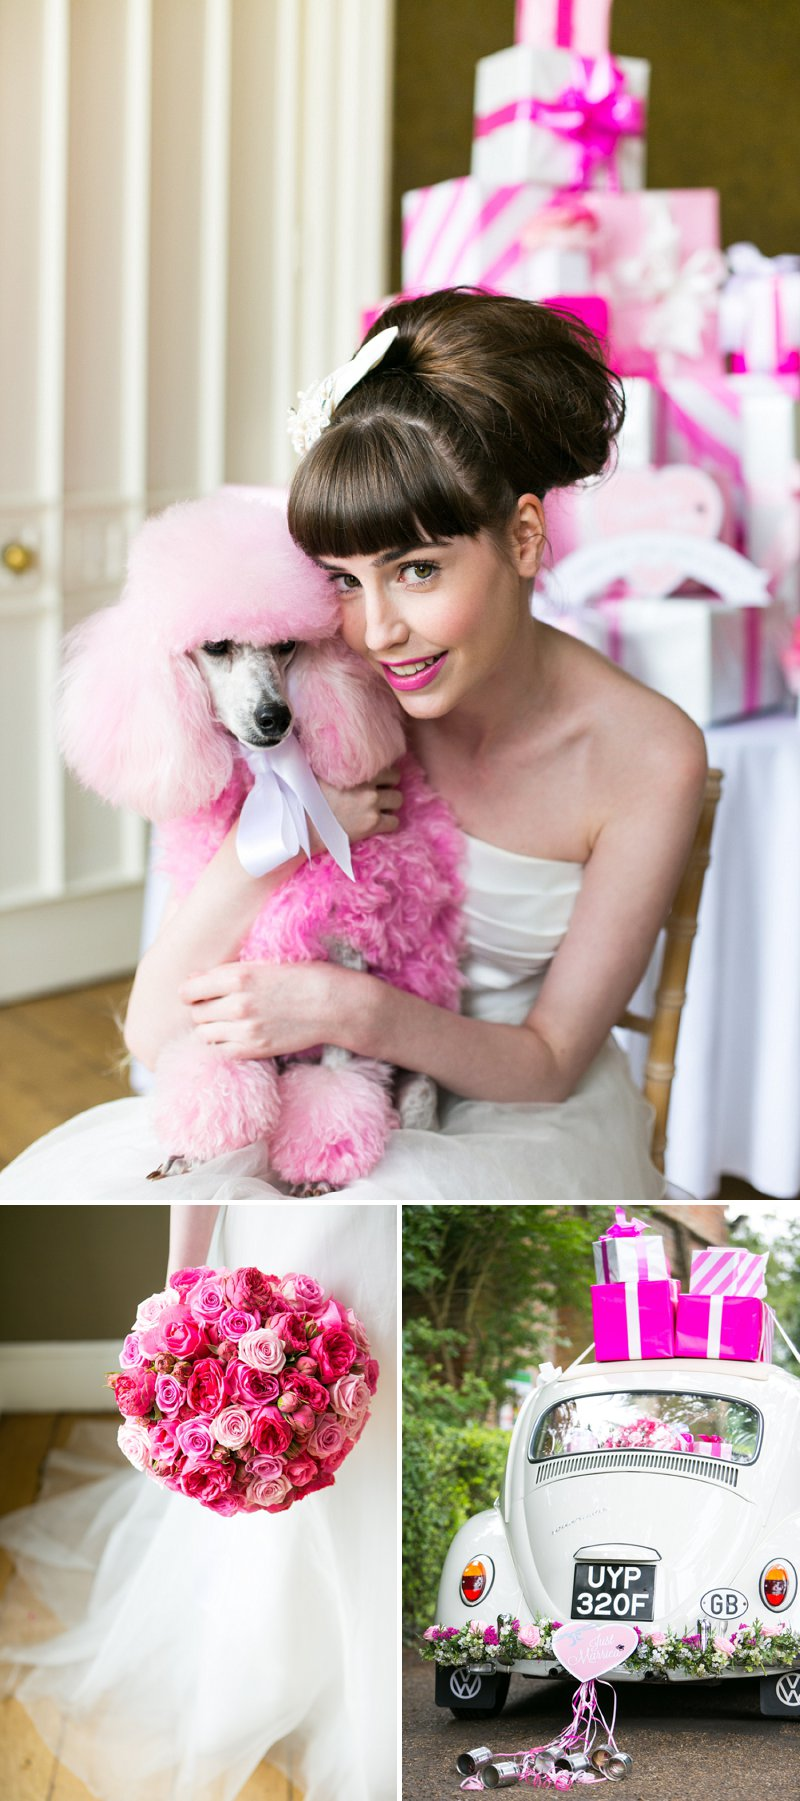 Fun Girly Bridal Inspiration Shoot At Nonsuch Mansion Inspired By Holly Golightly With Bright Pink Details A Vintage Wedding Car With Images by Anneli Marinovich Photography 1 In The Pink.